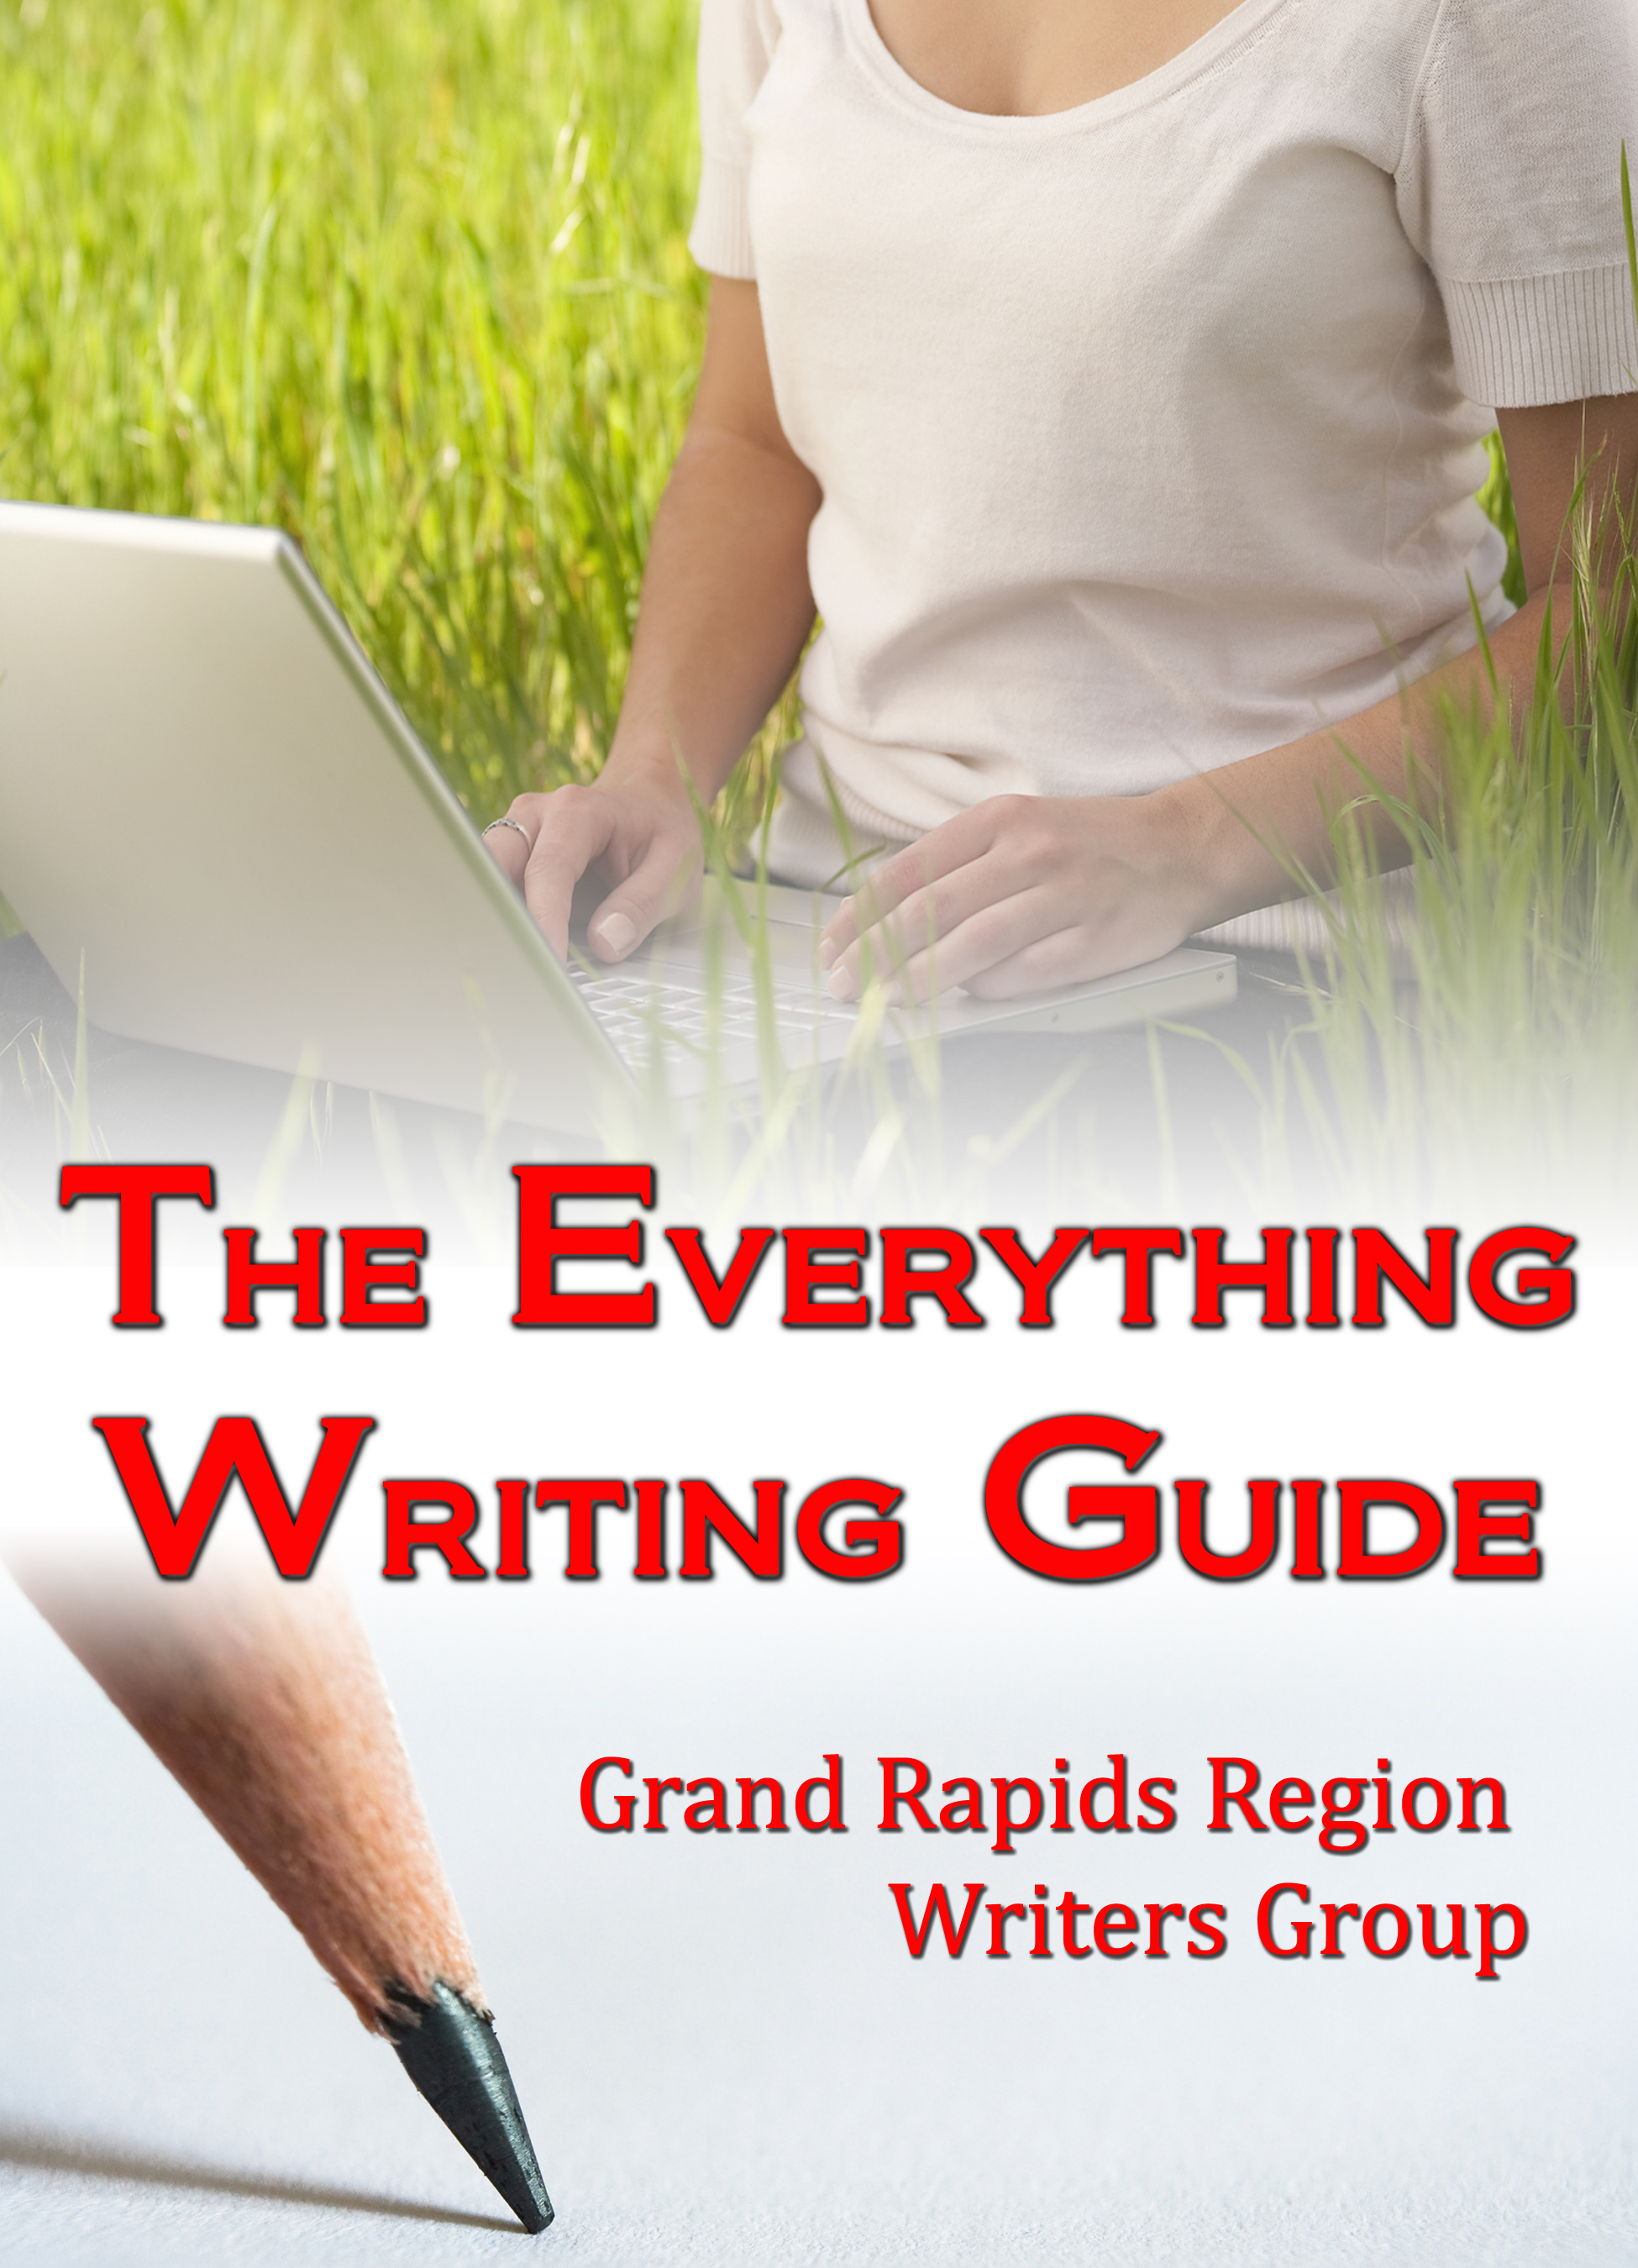 Buy our writing guide